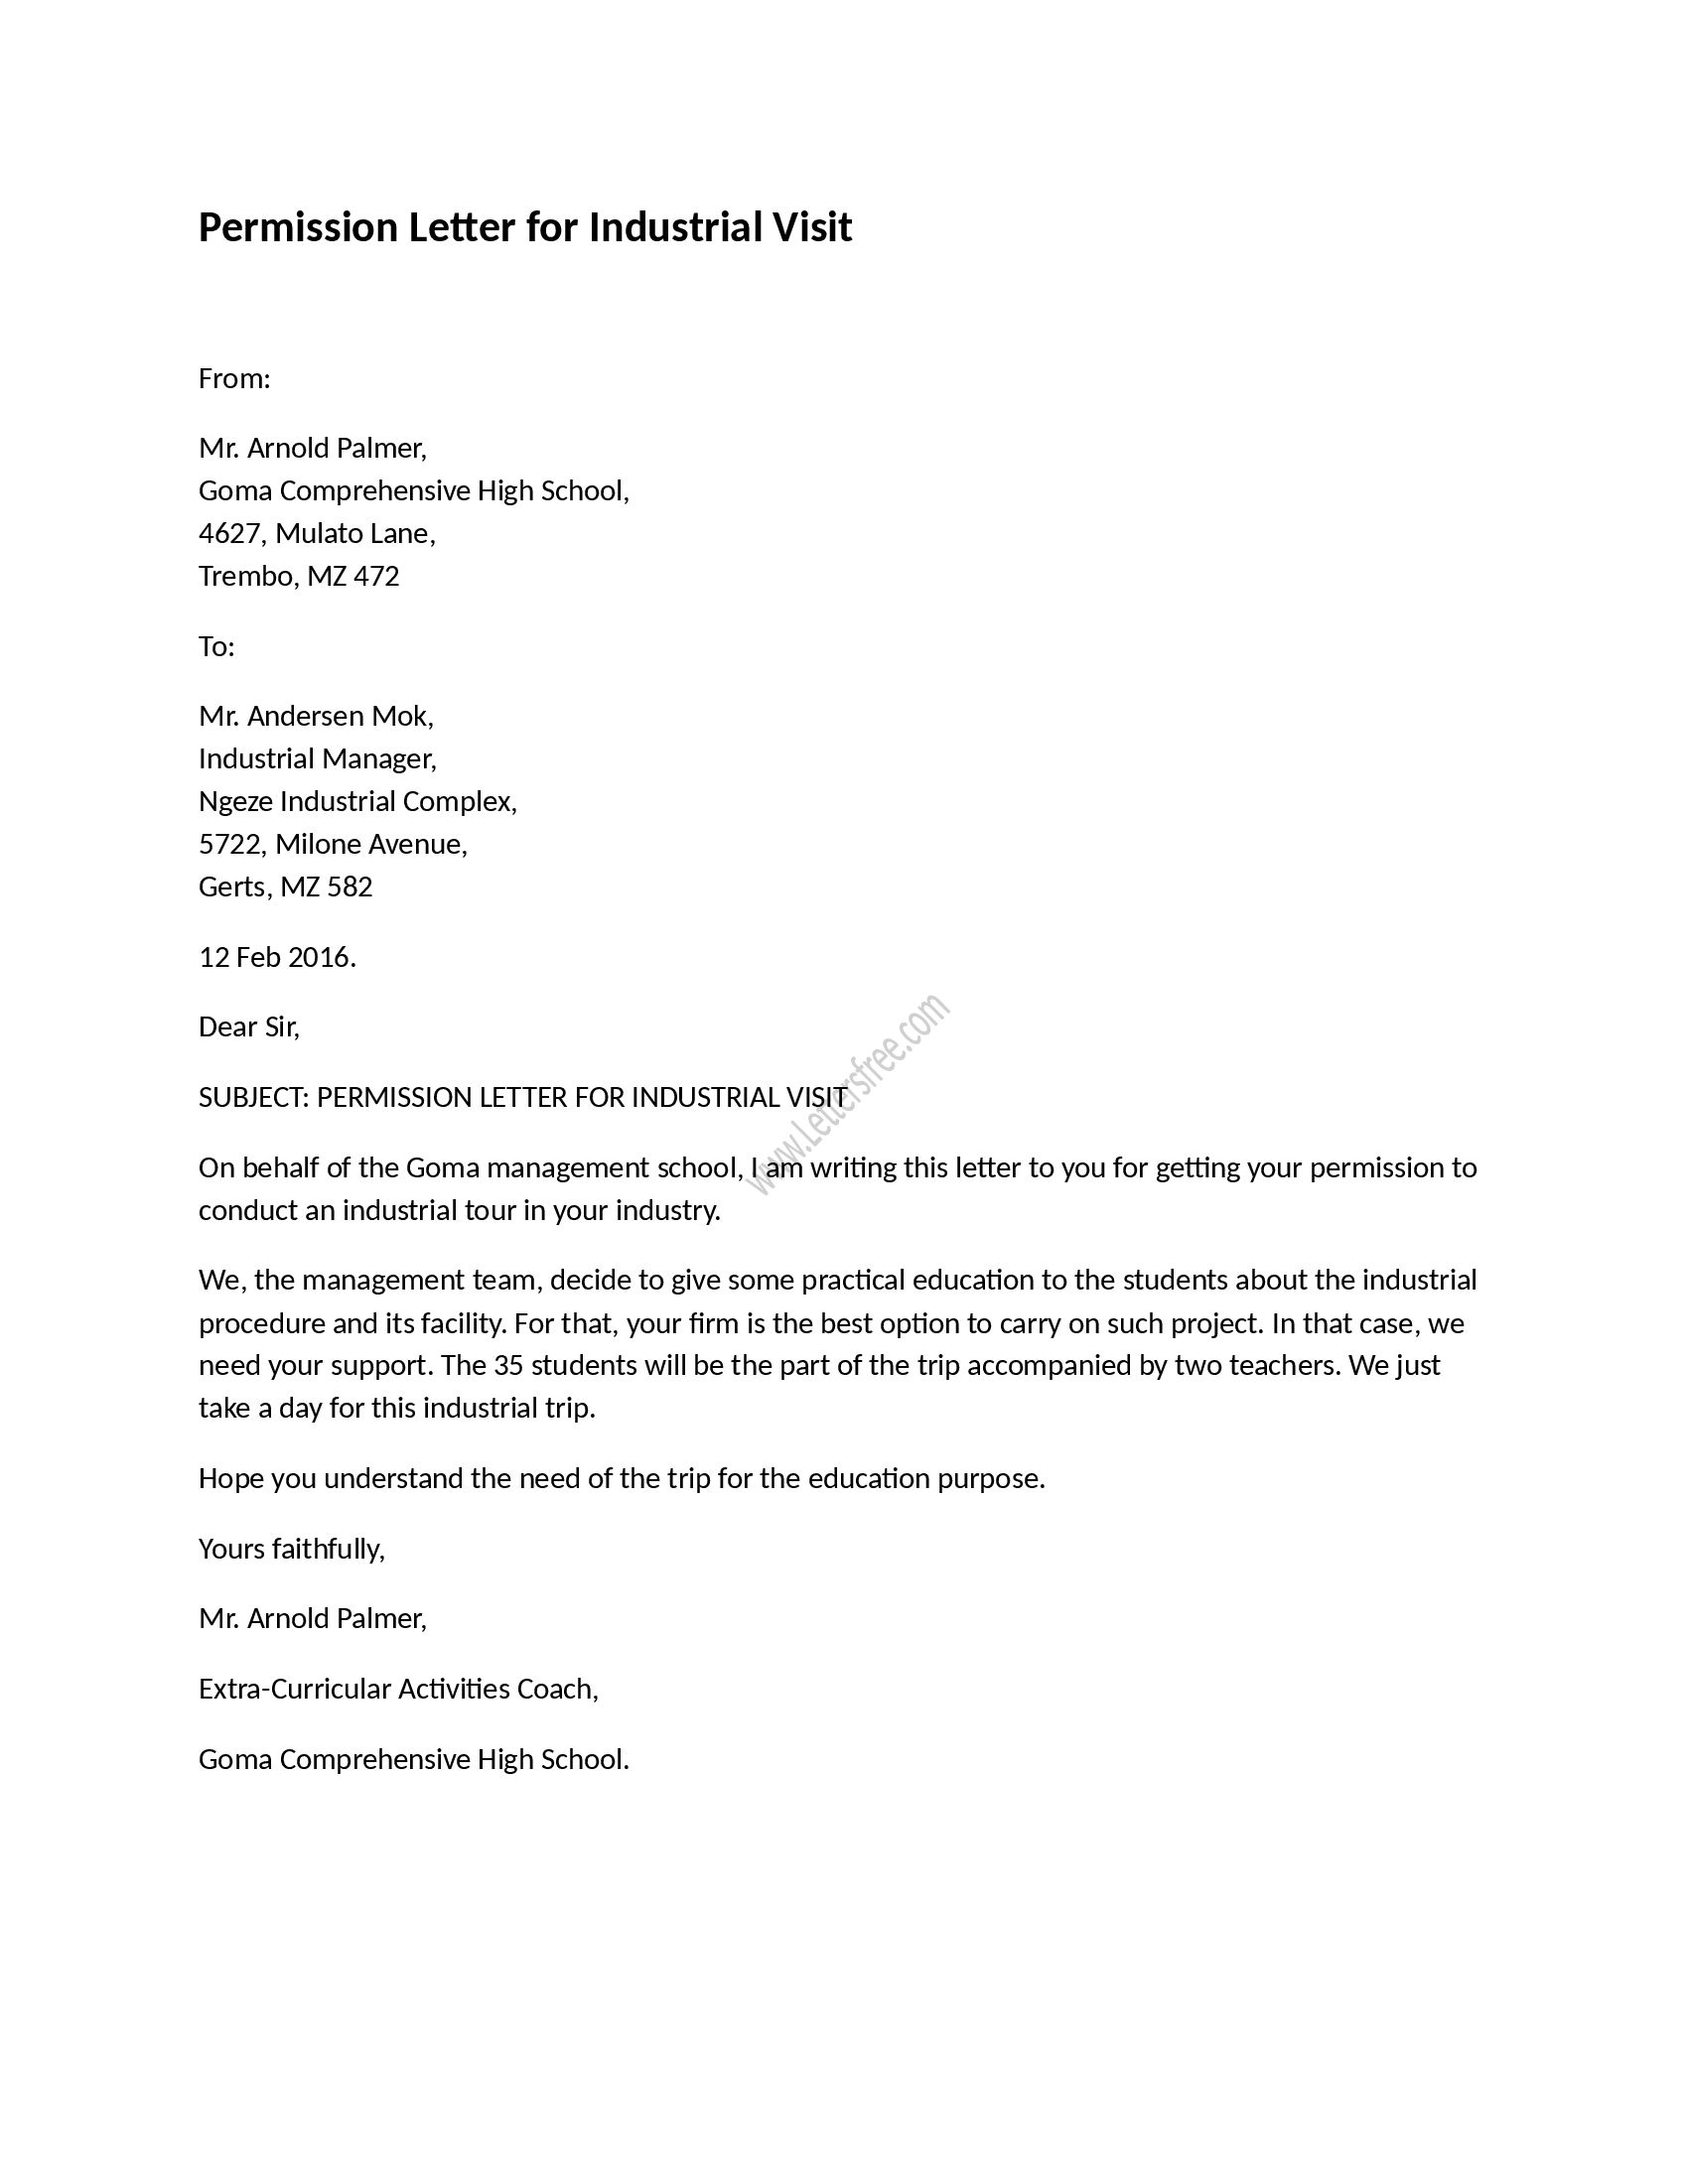 Sample vacation leave letter for travel abroad archives best letter vacation leave request letter template sample time tsedge co vacation leave request letter template sample time best goodbye letters images on pinterest thecheapjerseys Choice Image